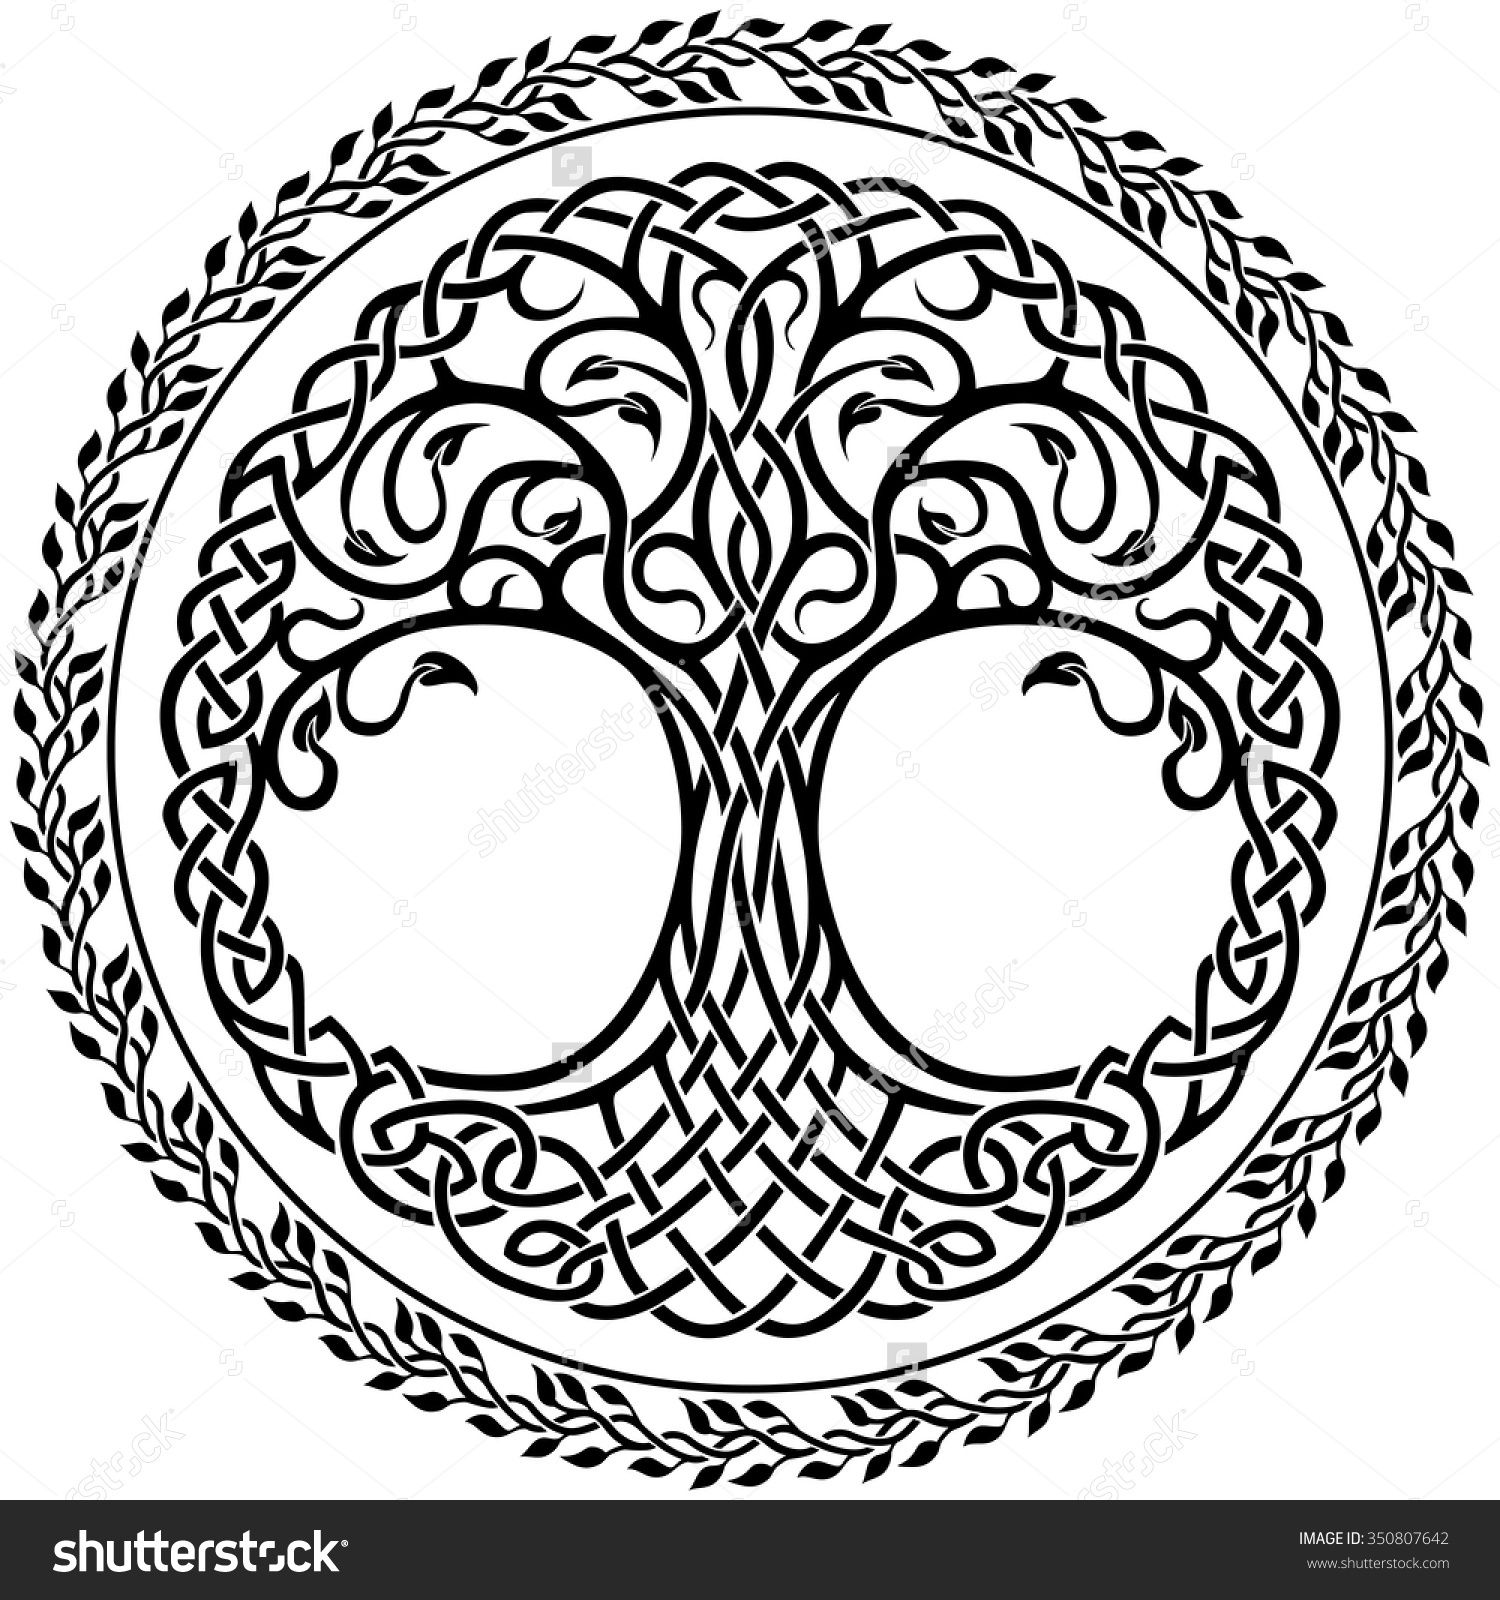 Tree of life ornament - Vector Ornament Decorative Celtic Tree Of Life With Floral Round